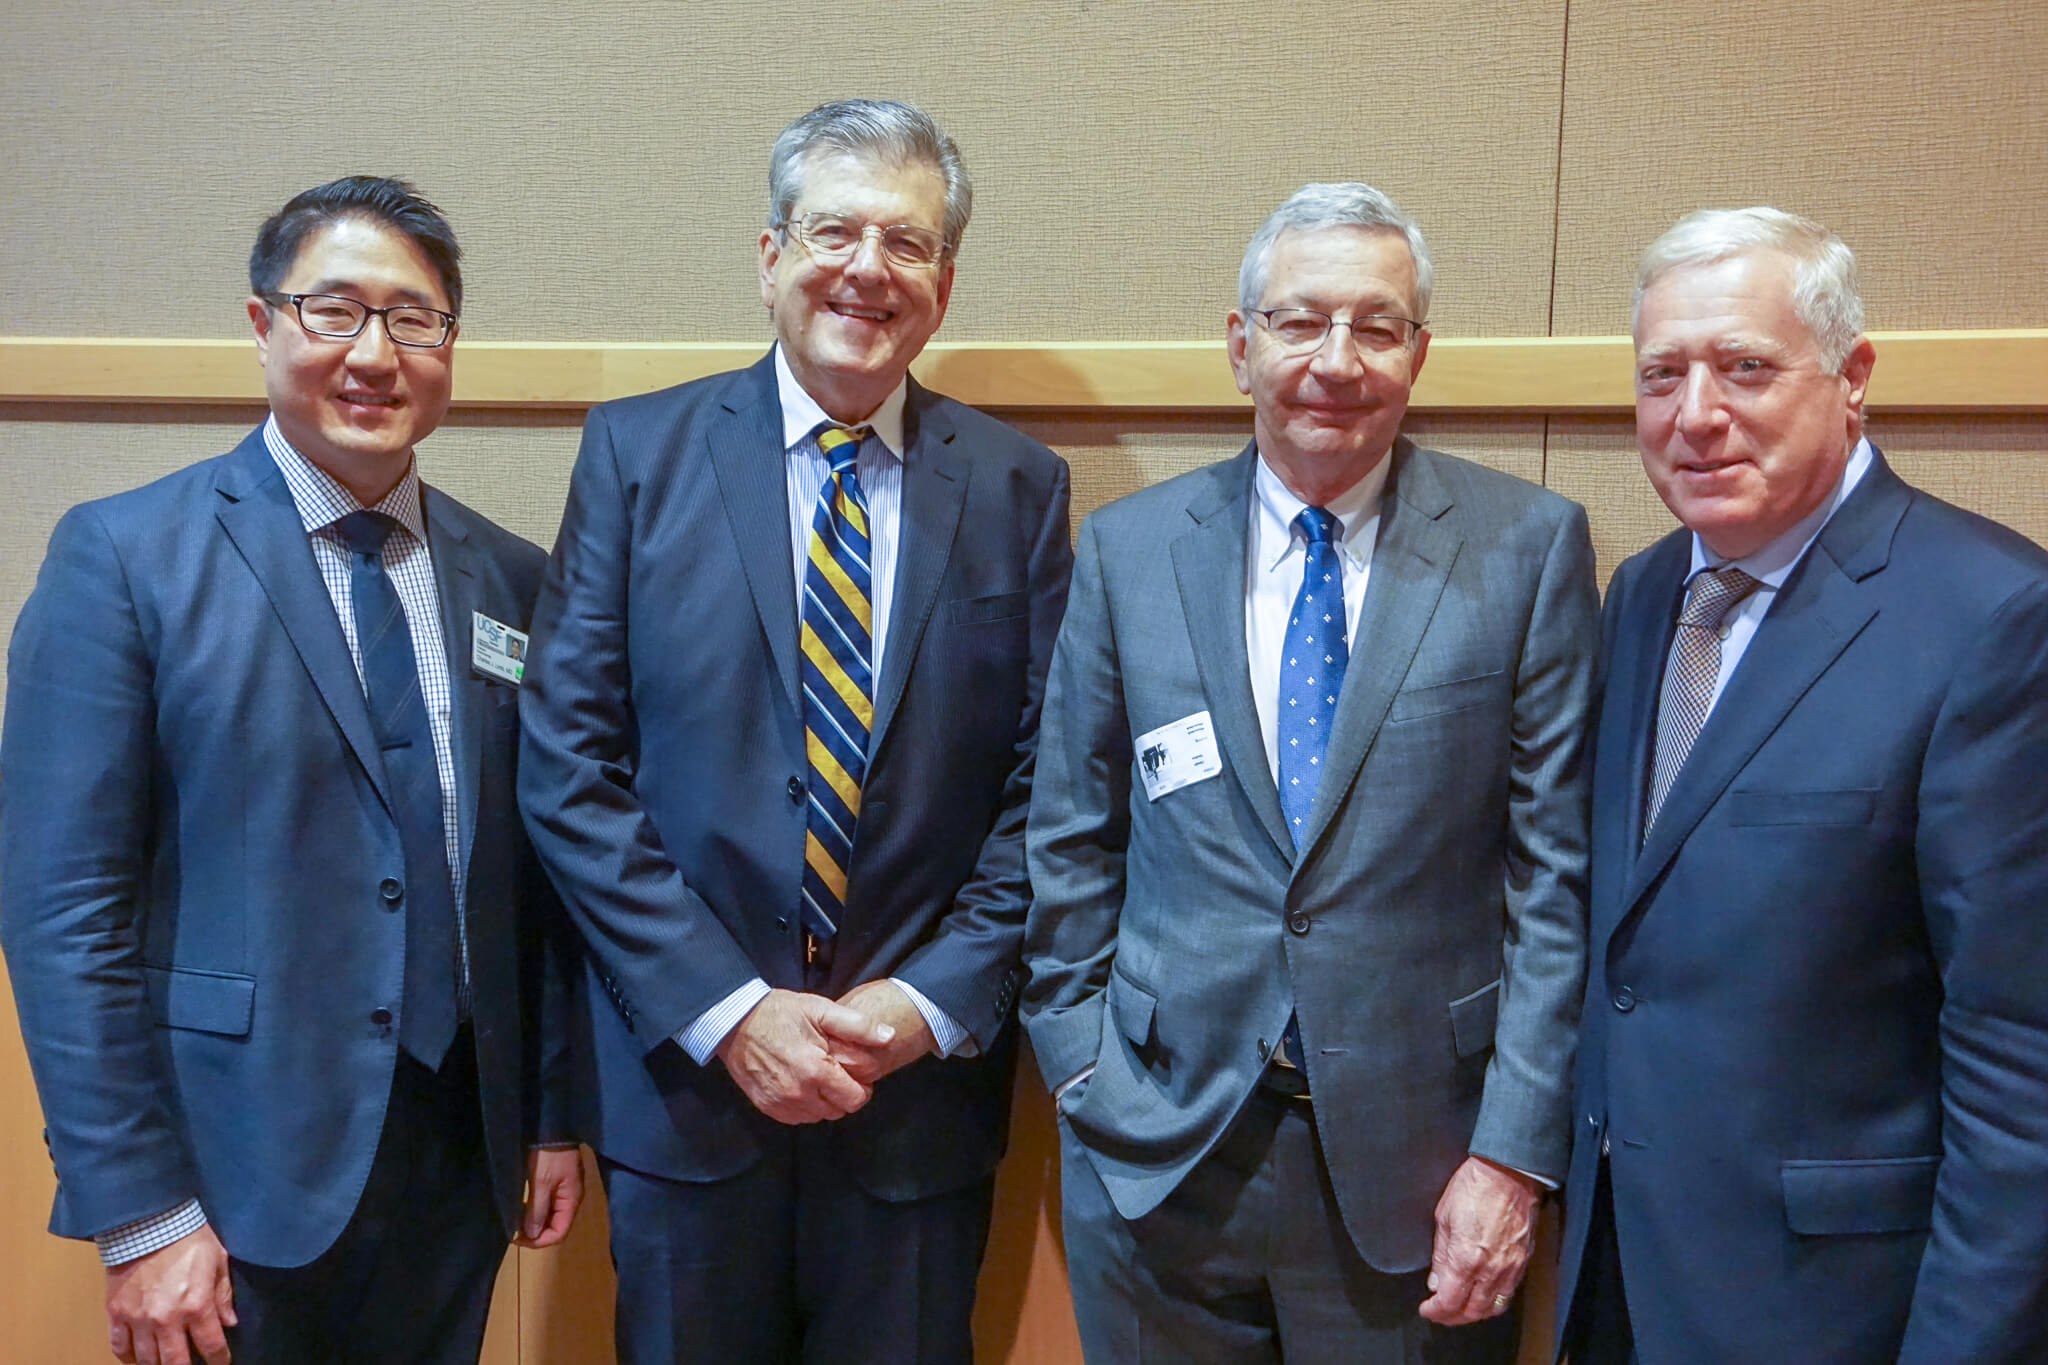 Schindler Lecture (L-R): Charles Limb, MD, Robert A. Schindler, MD, Clough Shelton, MD and Andrew Murr, MD